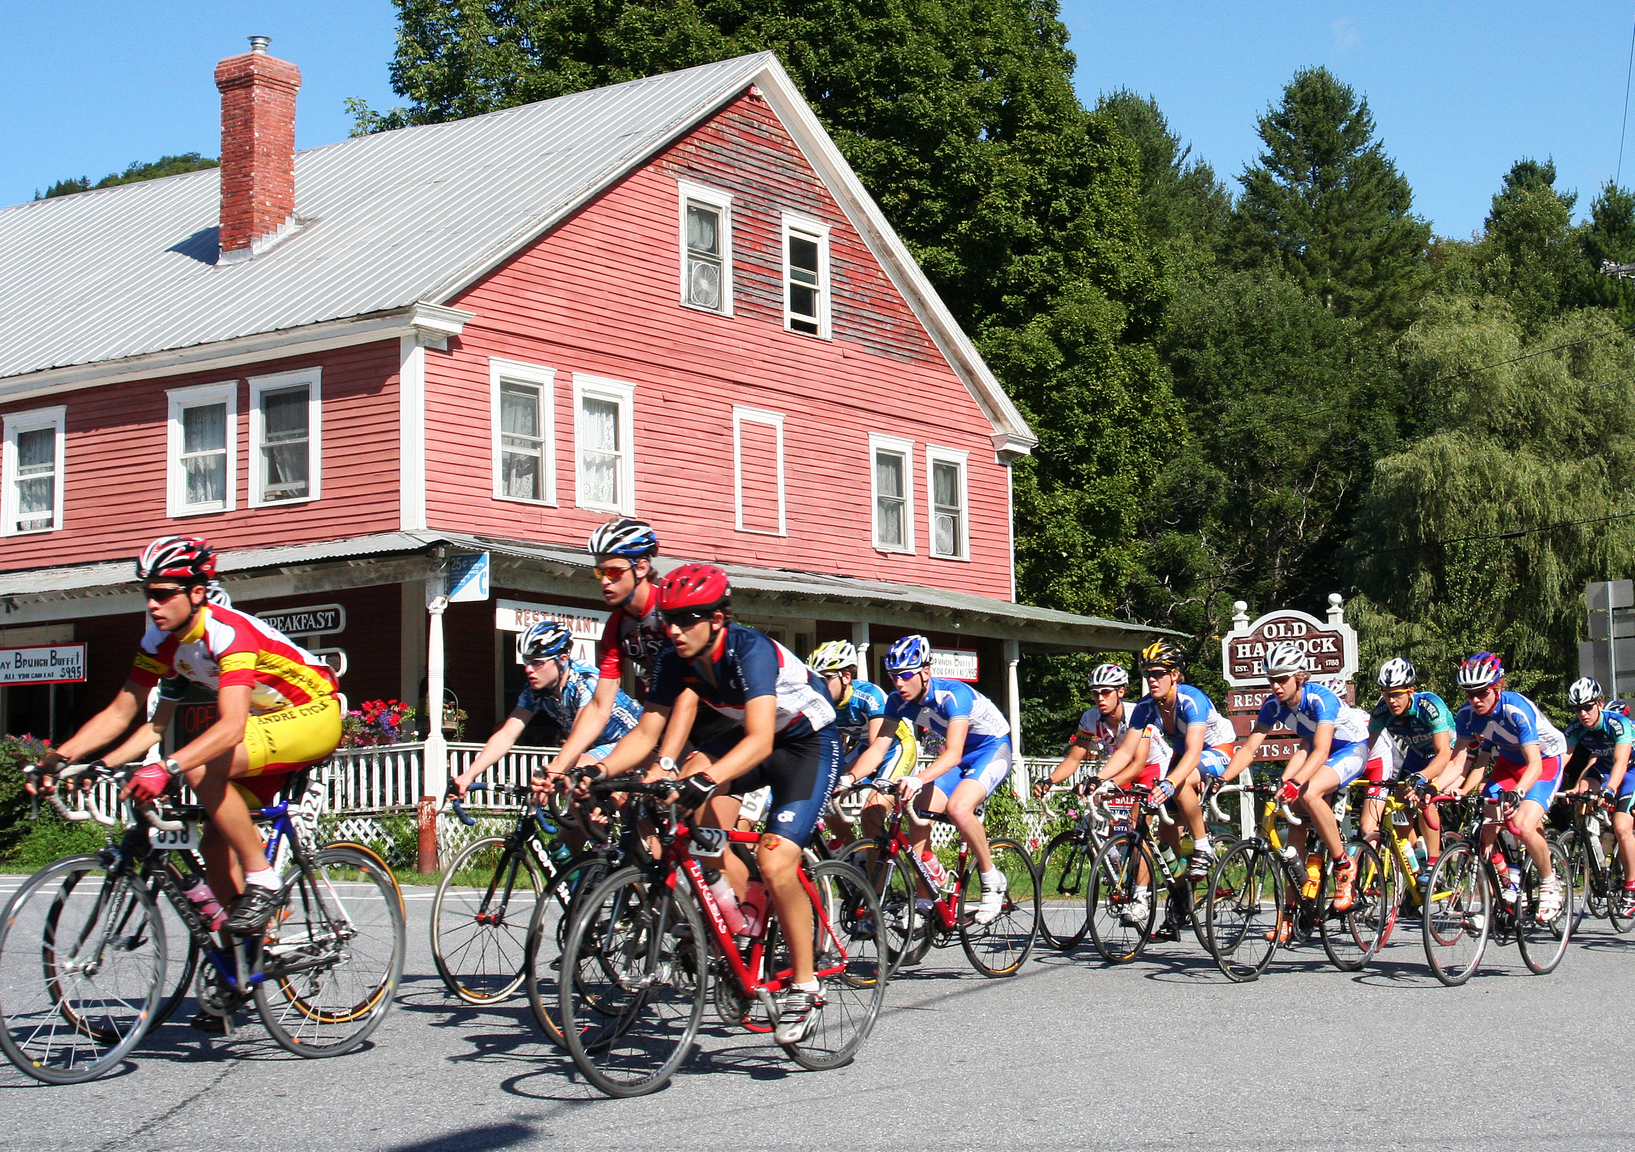 Vermont Hosts Several Sports and Endurance Events from Spring to Autumn